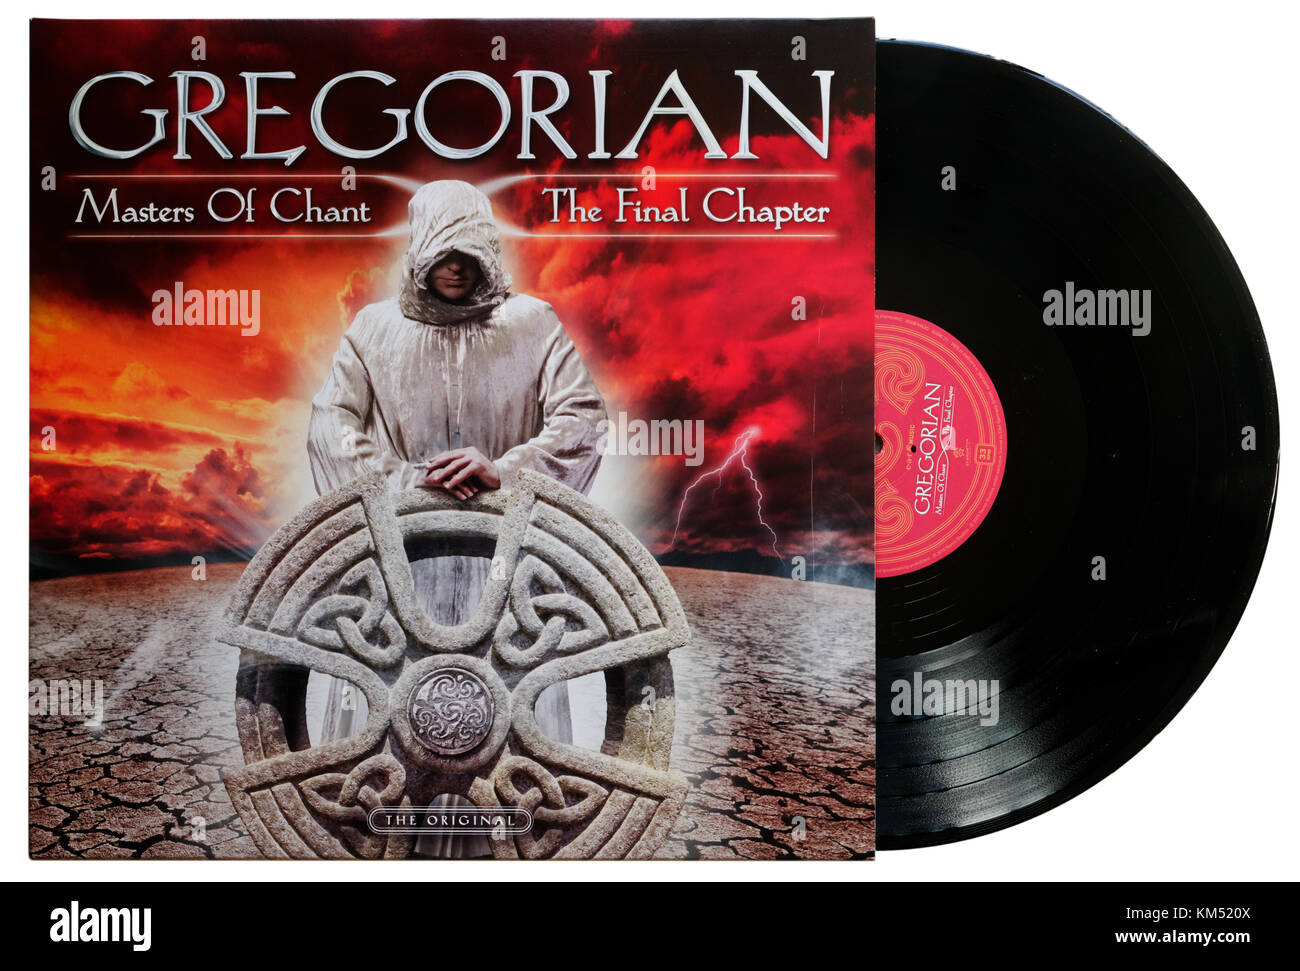 Gregorian Masters of Chant The Final Chapter album - Stock Image